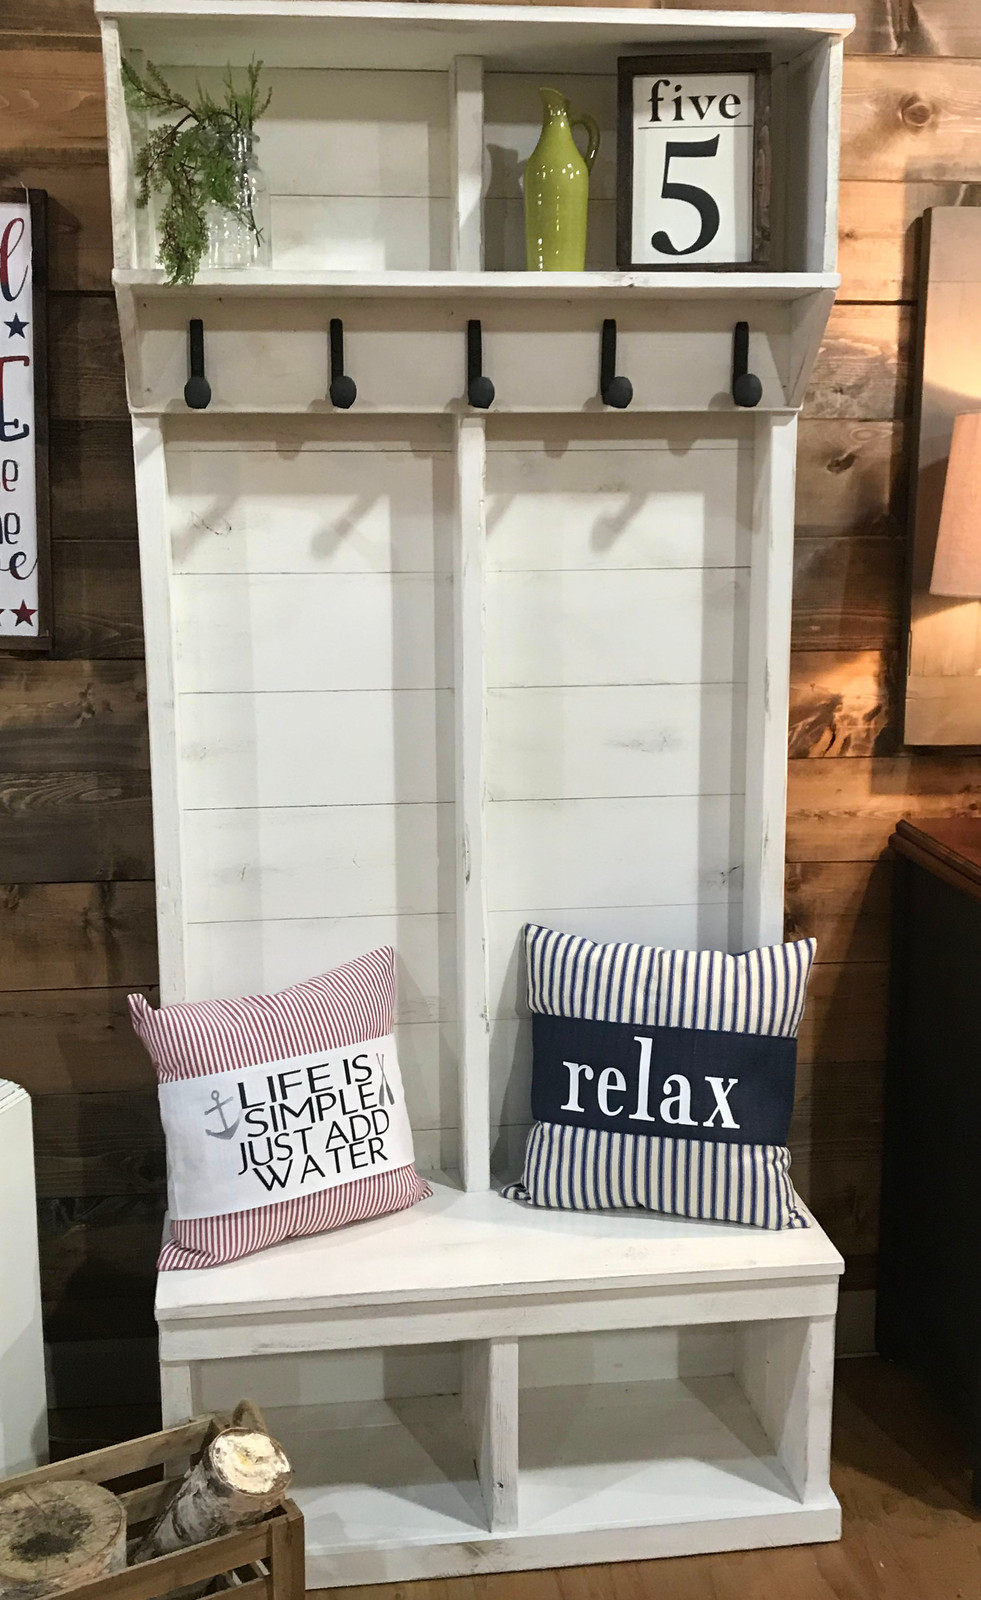 This Locker Is Made From Reclaimed Wood And Hooks Railroad Spikes Perfect For Smaller Entrys Or Mud Rooms 36 X15 5 X80 H You Can Custom Make To A